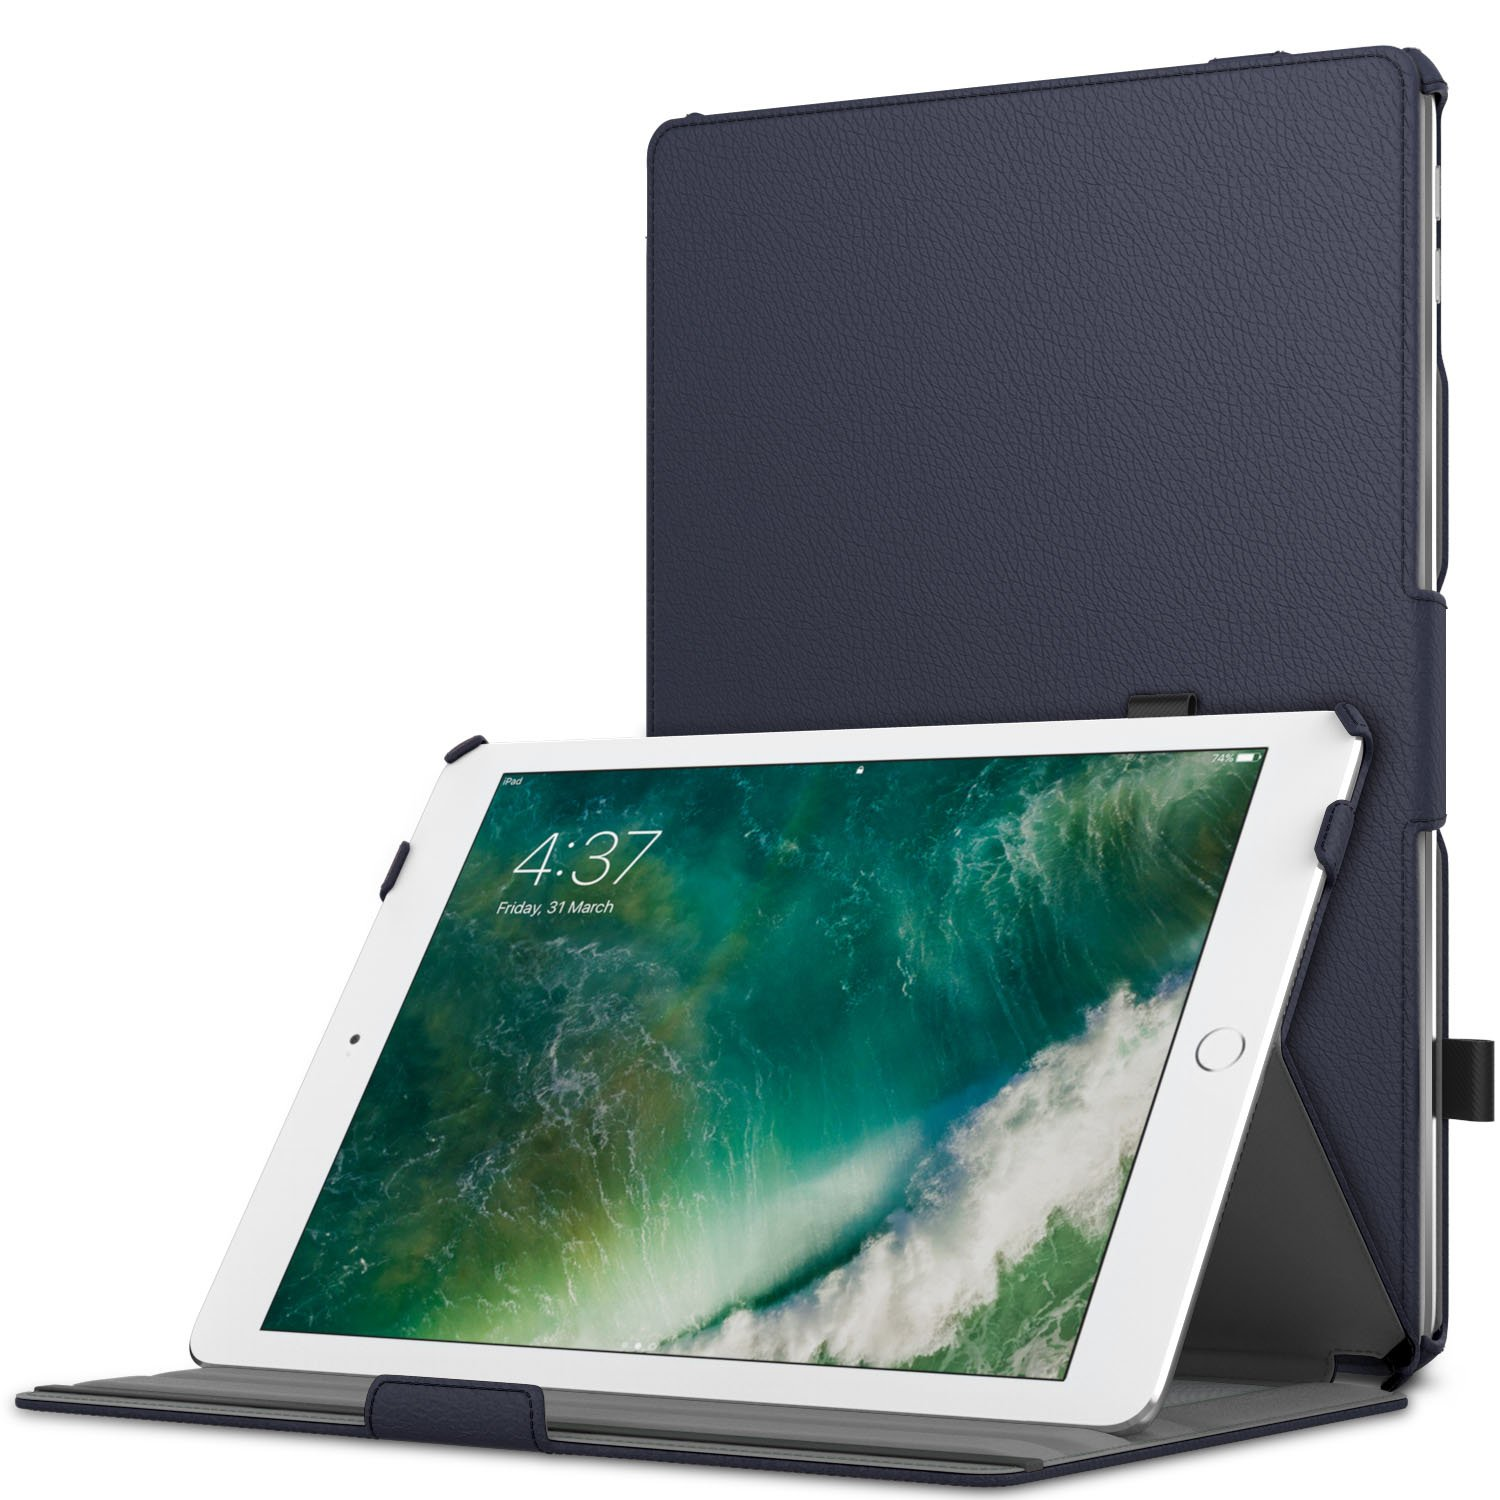 MoKo Case Fit 2018/2017 iPad 9.7 6th/5th Generation - Slim-Fit Multi-Angle Folio Cover Case with Auto Wake/Sleep Compatible with iPad 9.7 Inch 2018/2017, Indigo